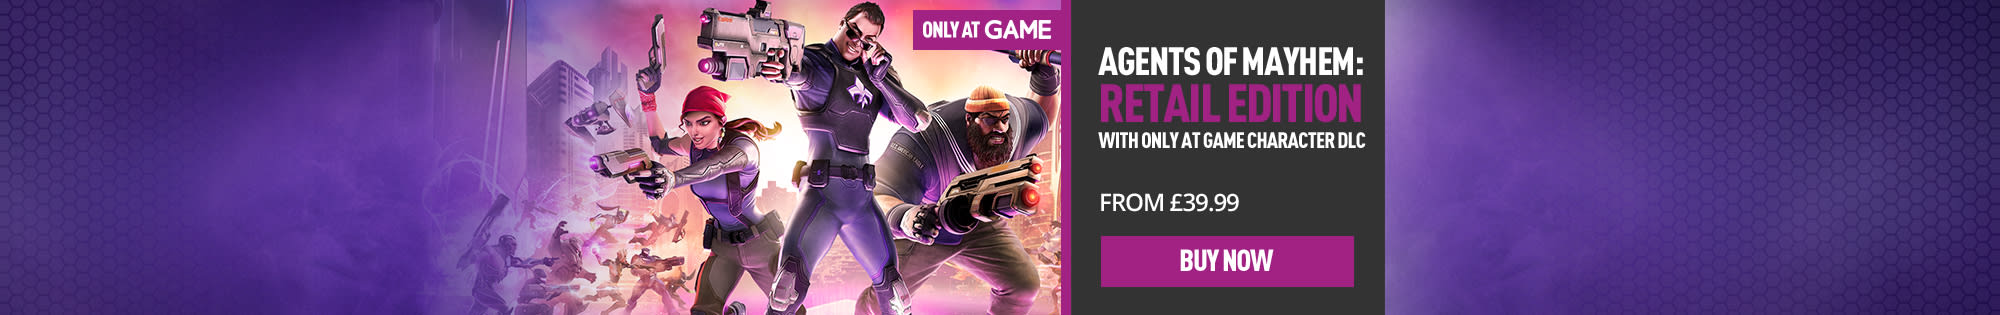 Agents of Mayhem Out Now! - Homepage Banner